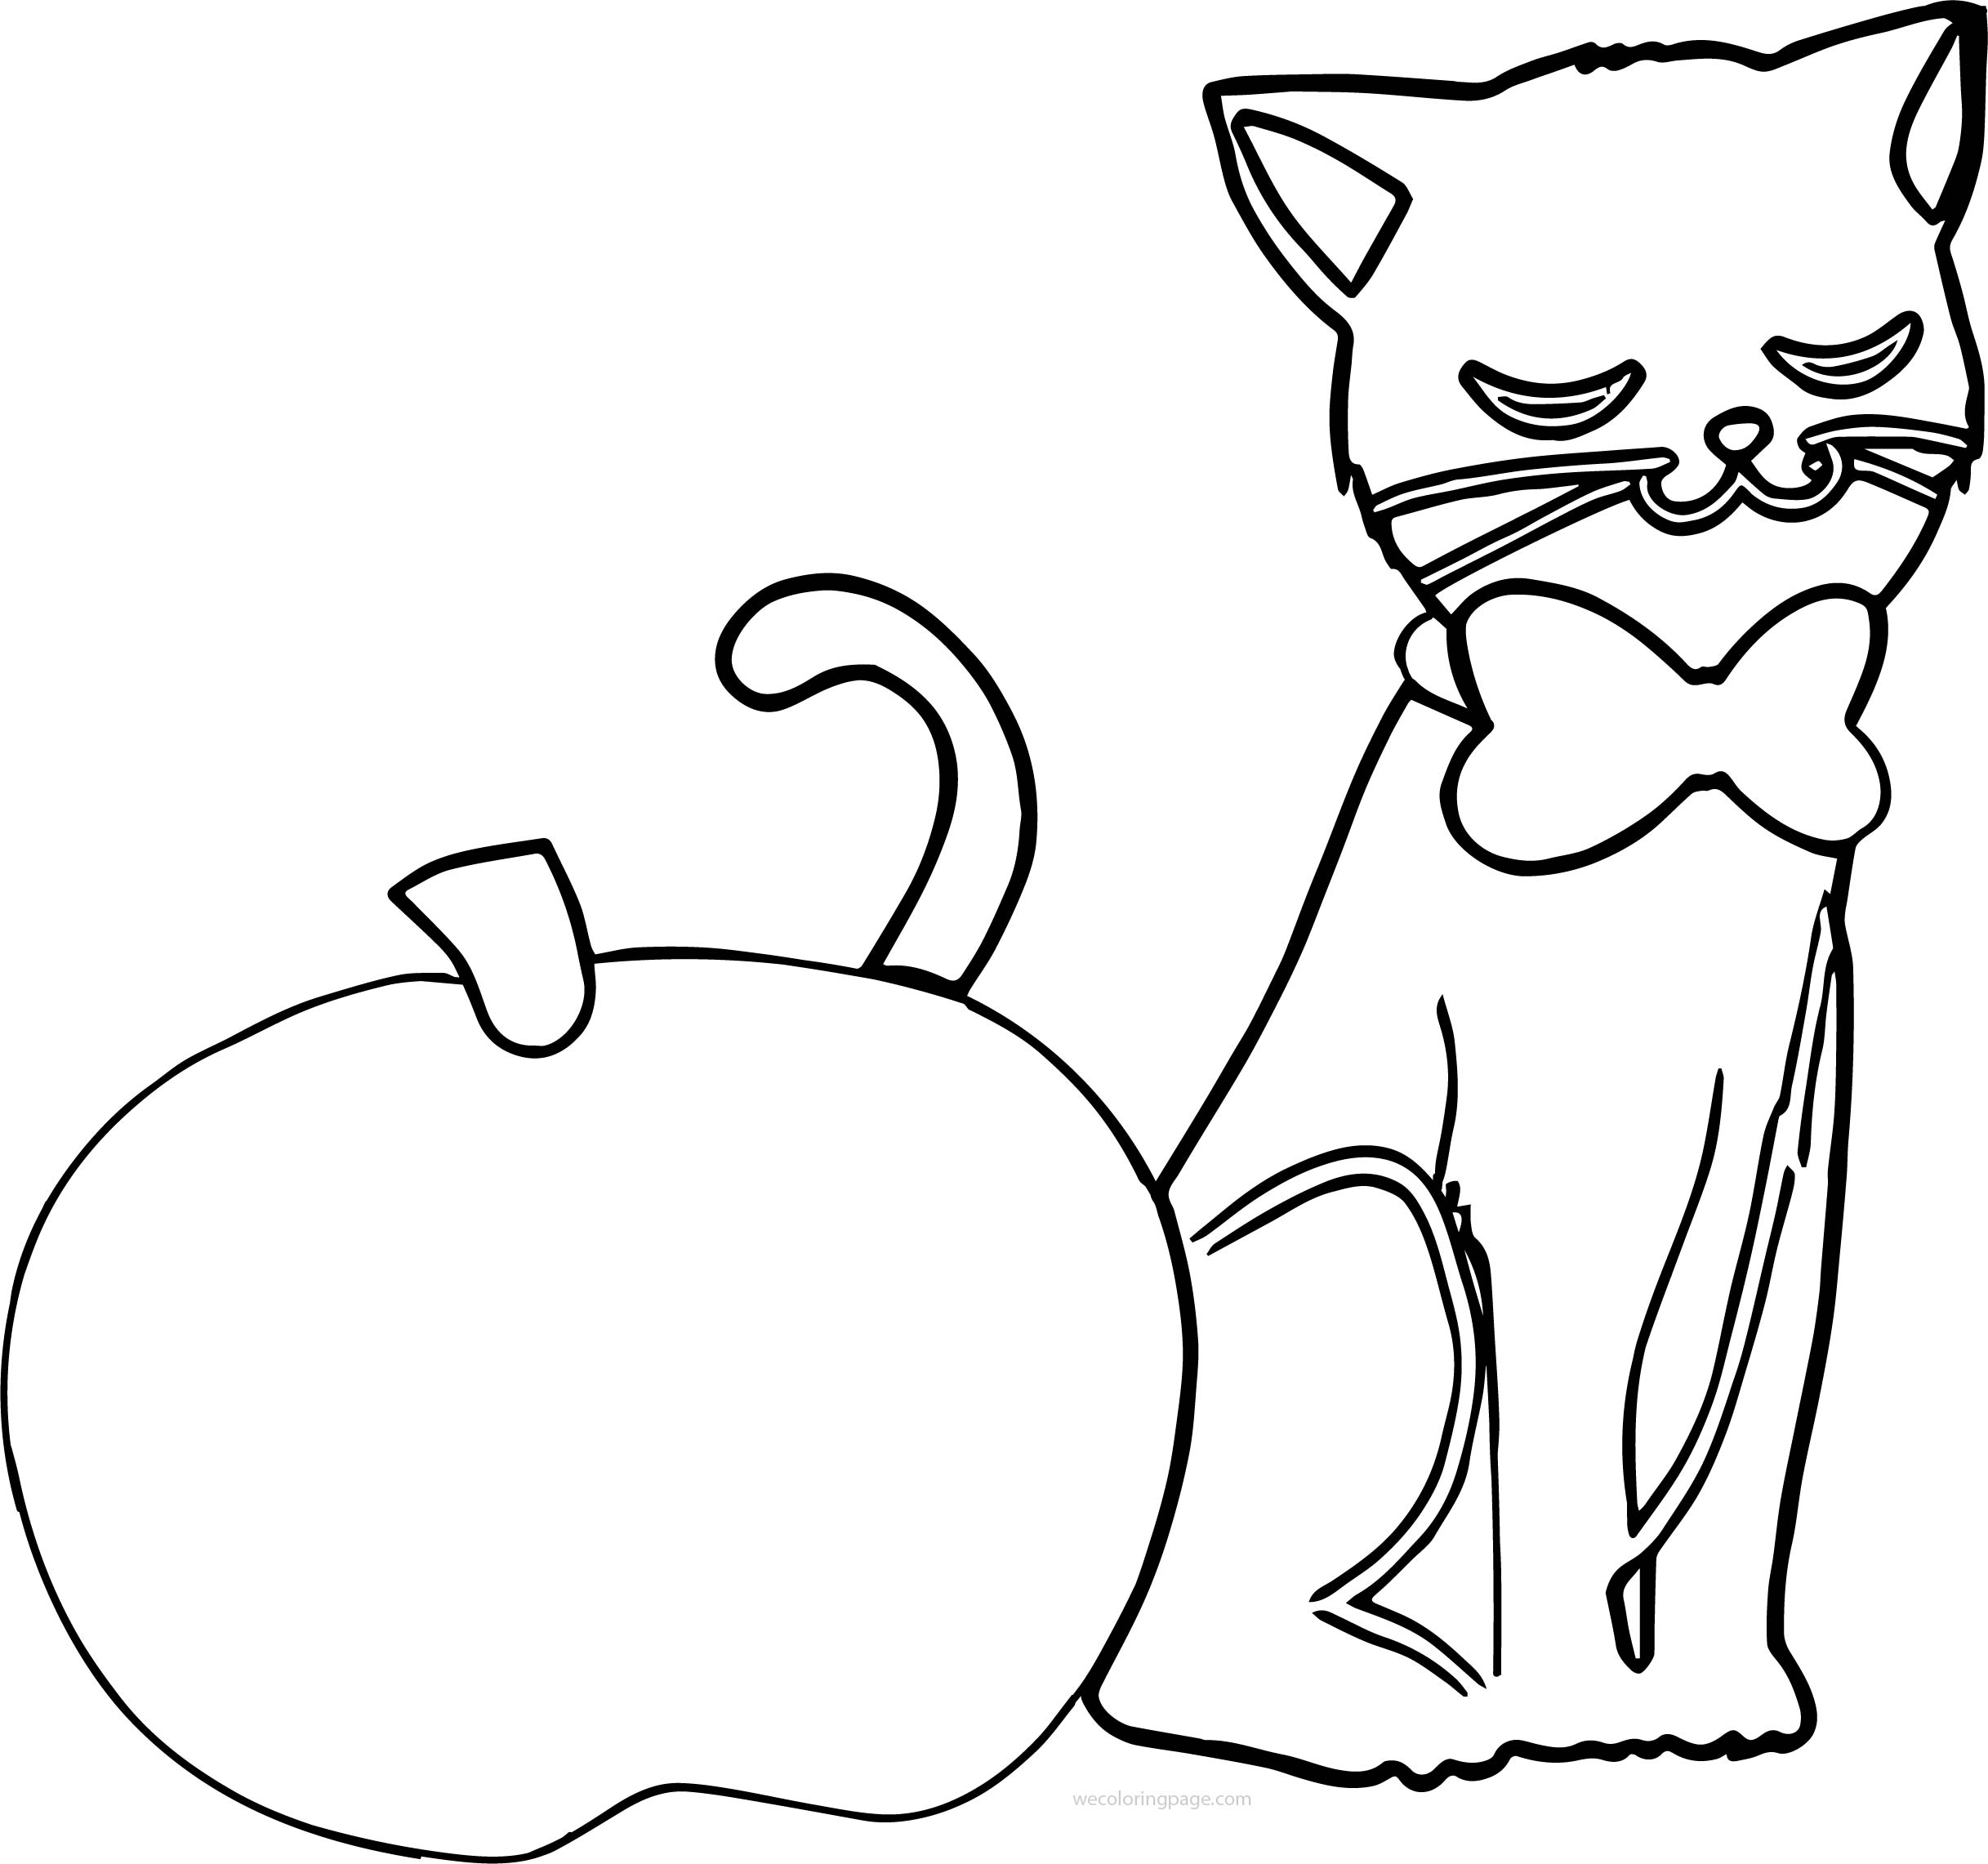 Apple And Cat Coloring Page